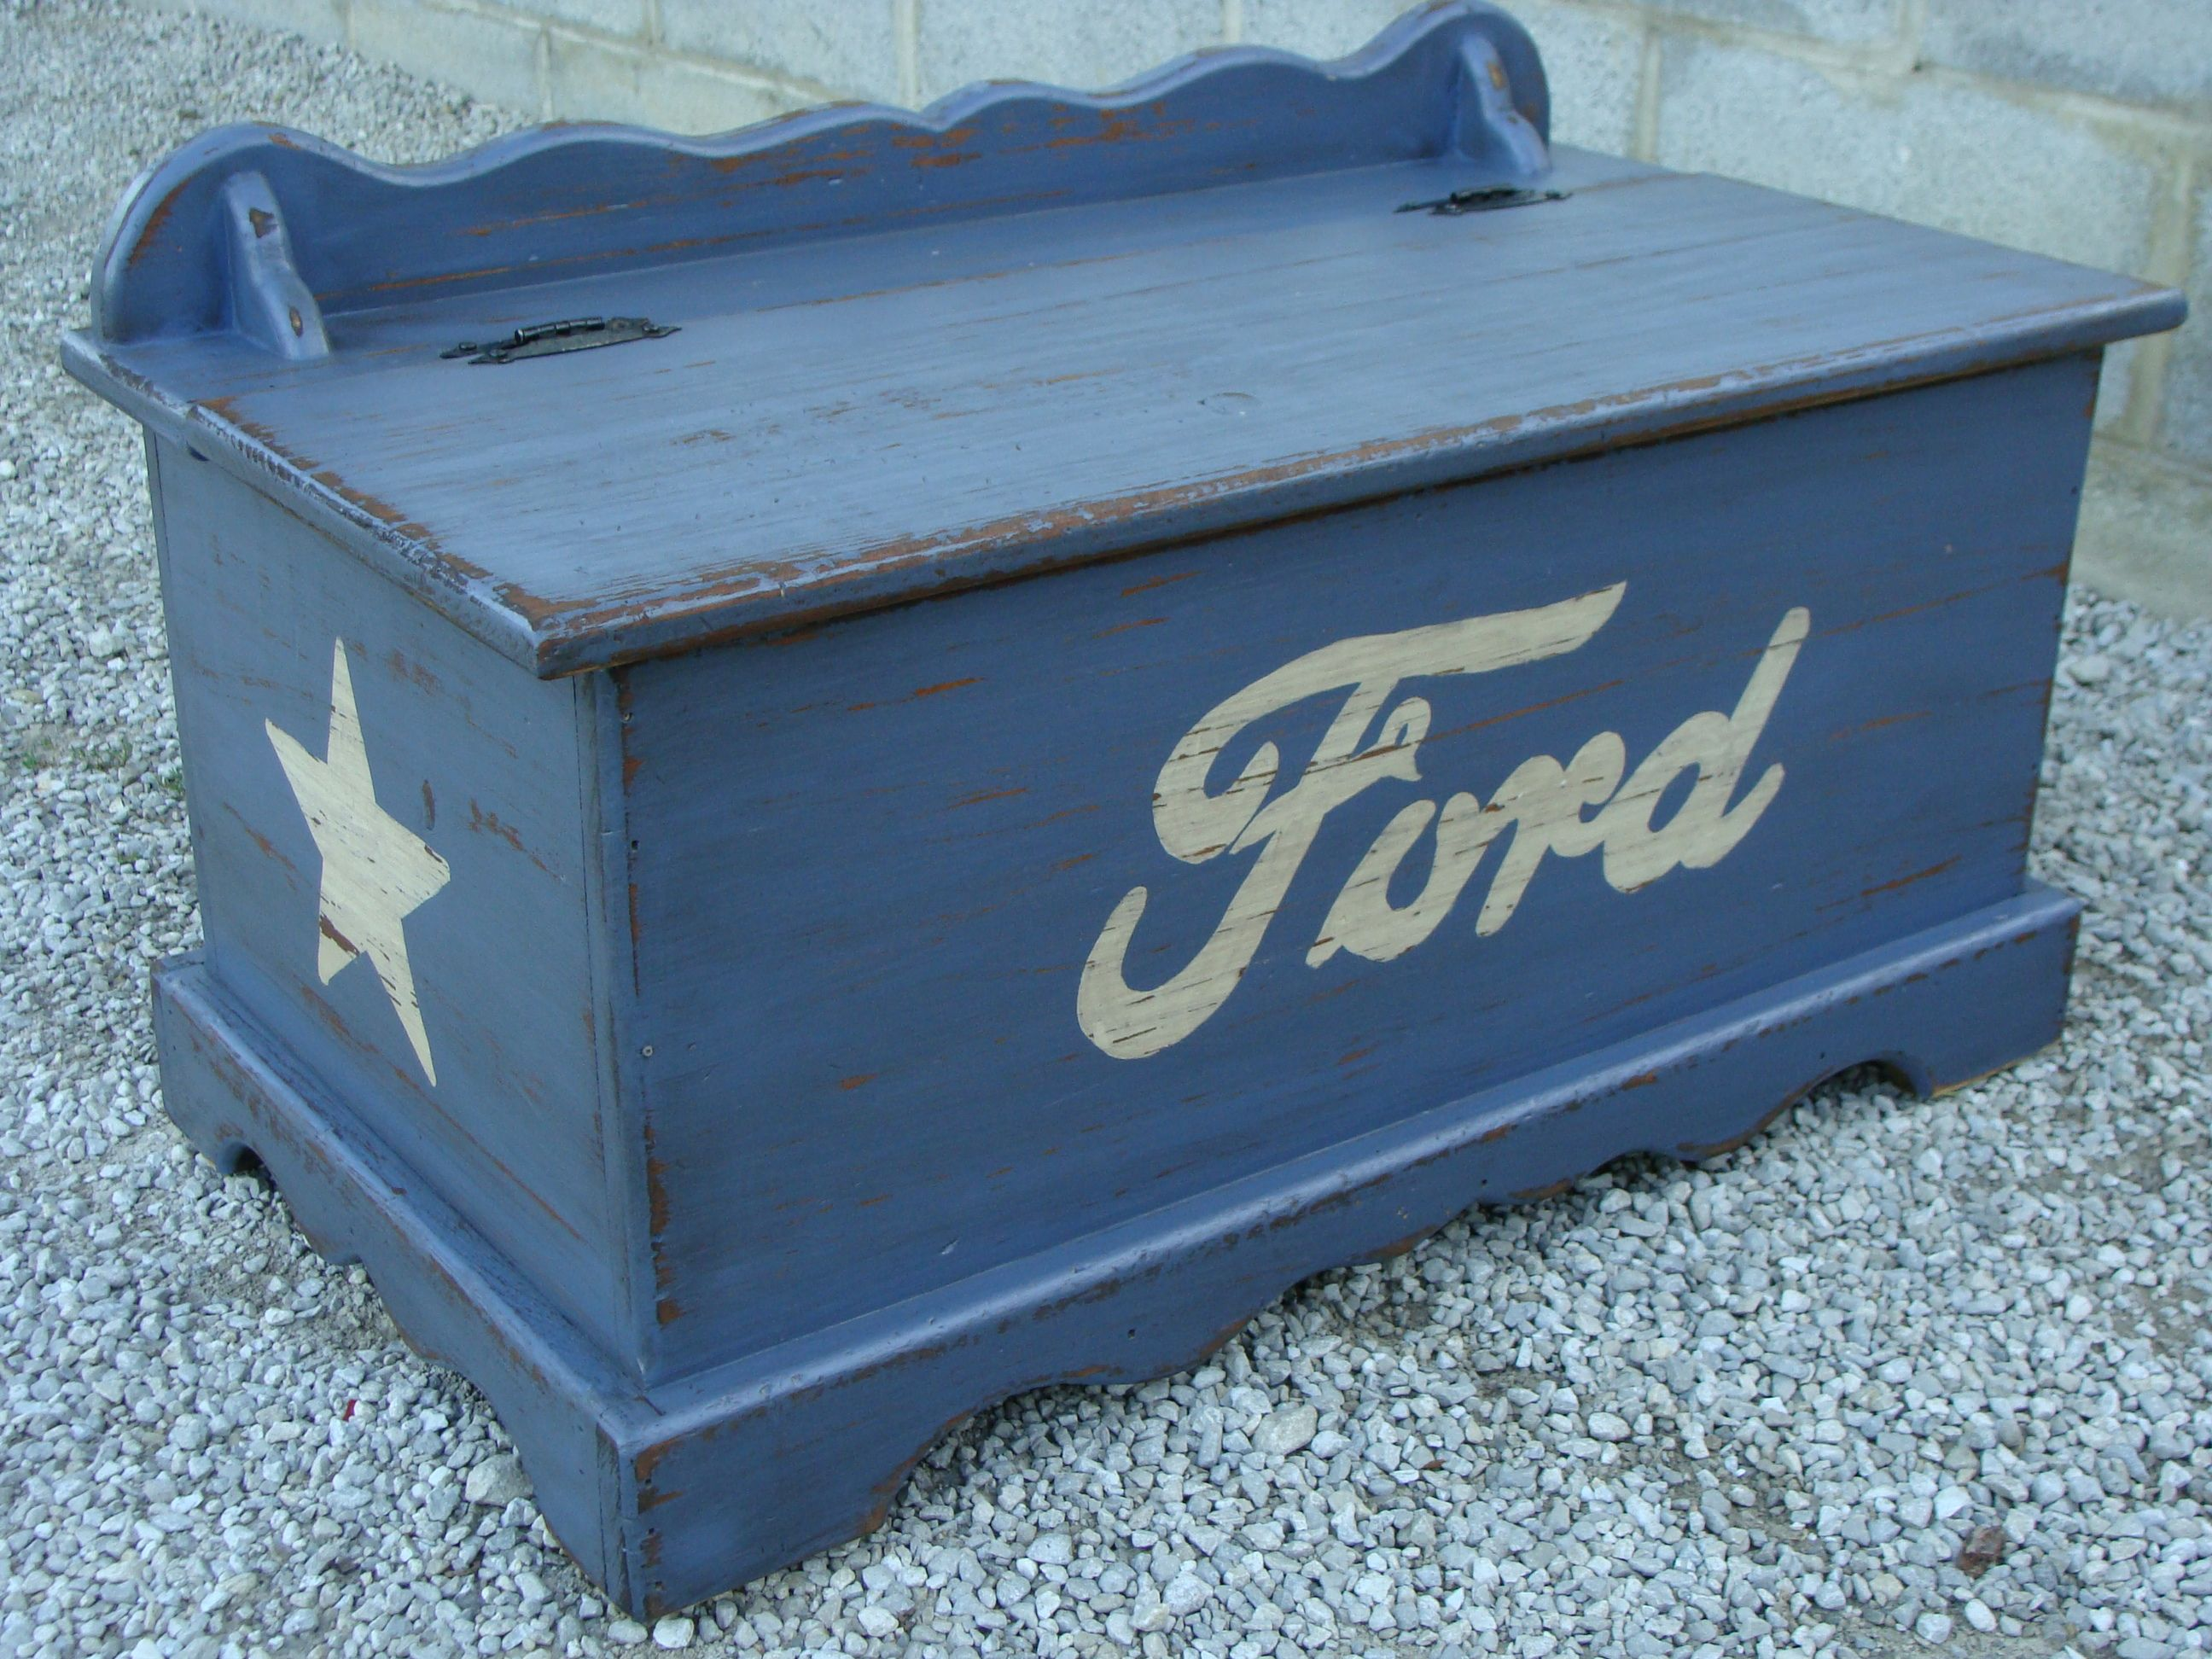 My Childhood Hope Chest Turned Into My Sons Toy Box He Loves Ford Mustangs So I Painted It Up And Distressed Boys Toy Box Boy Nursery Cars Baby Boy Bedroom